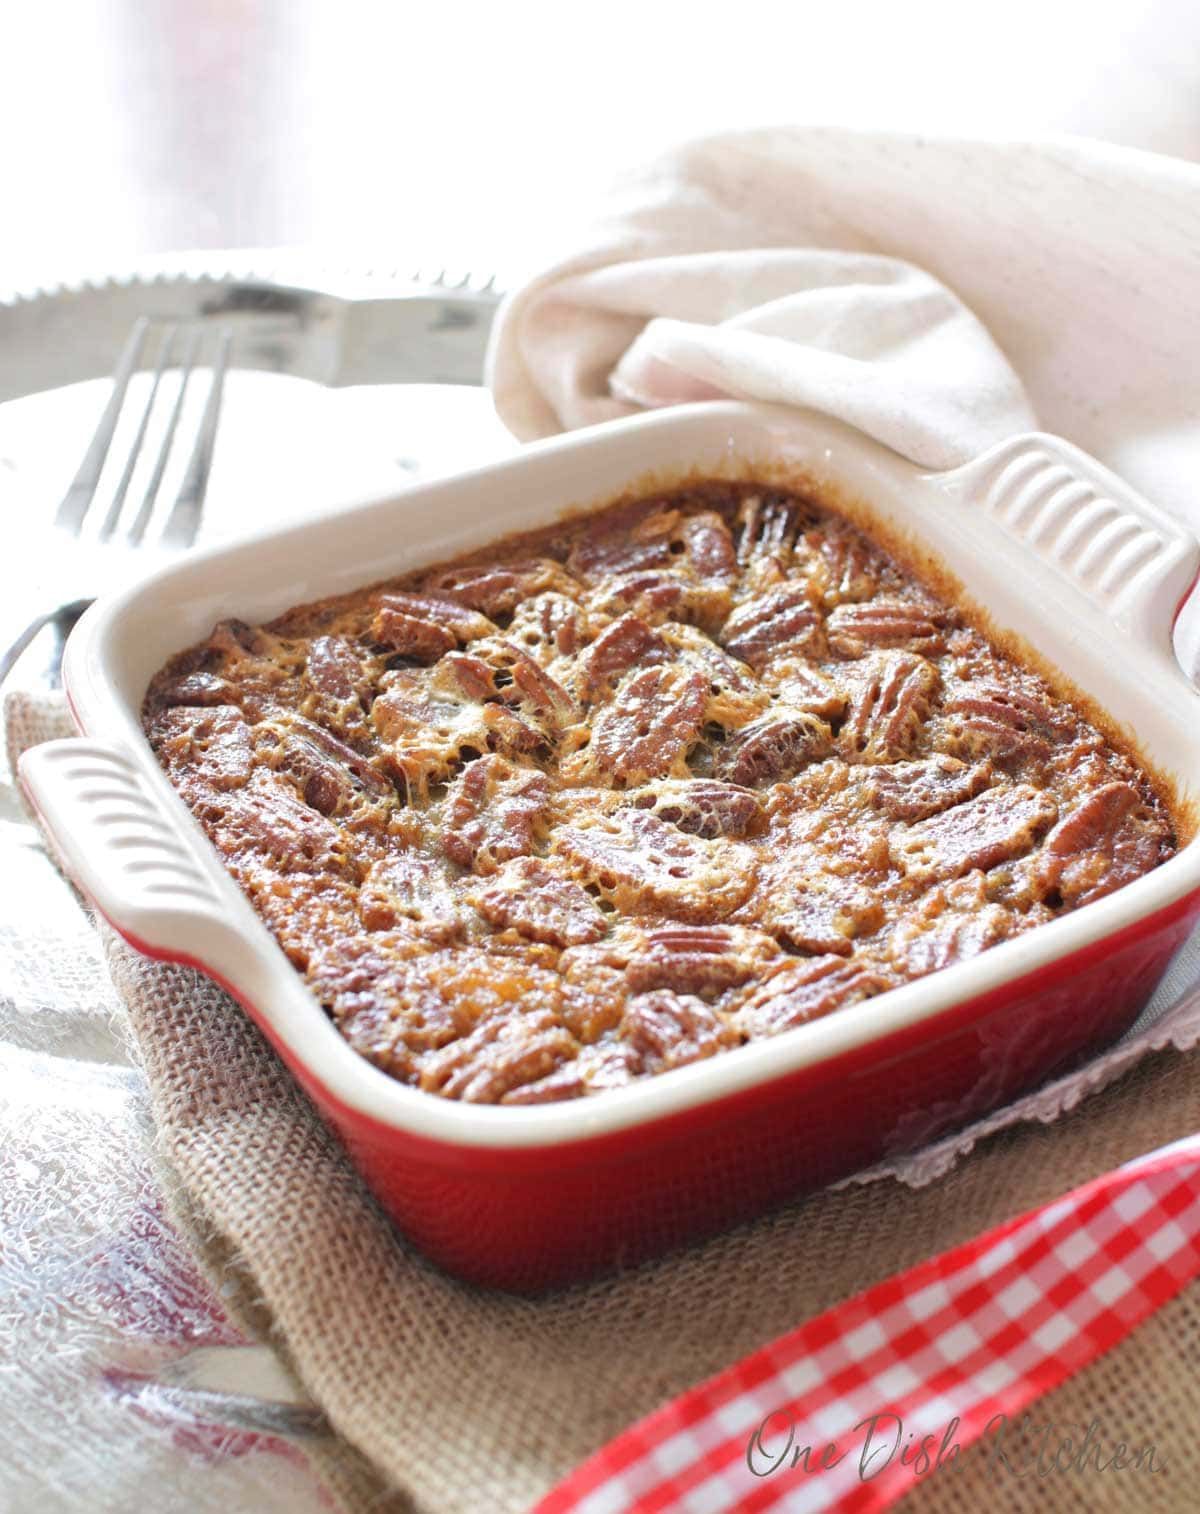 a mini pecan pie baked in a small red baking dish | one dish kitchen